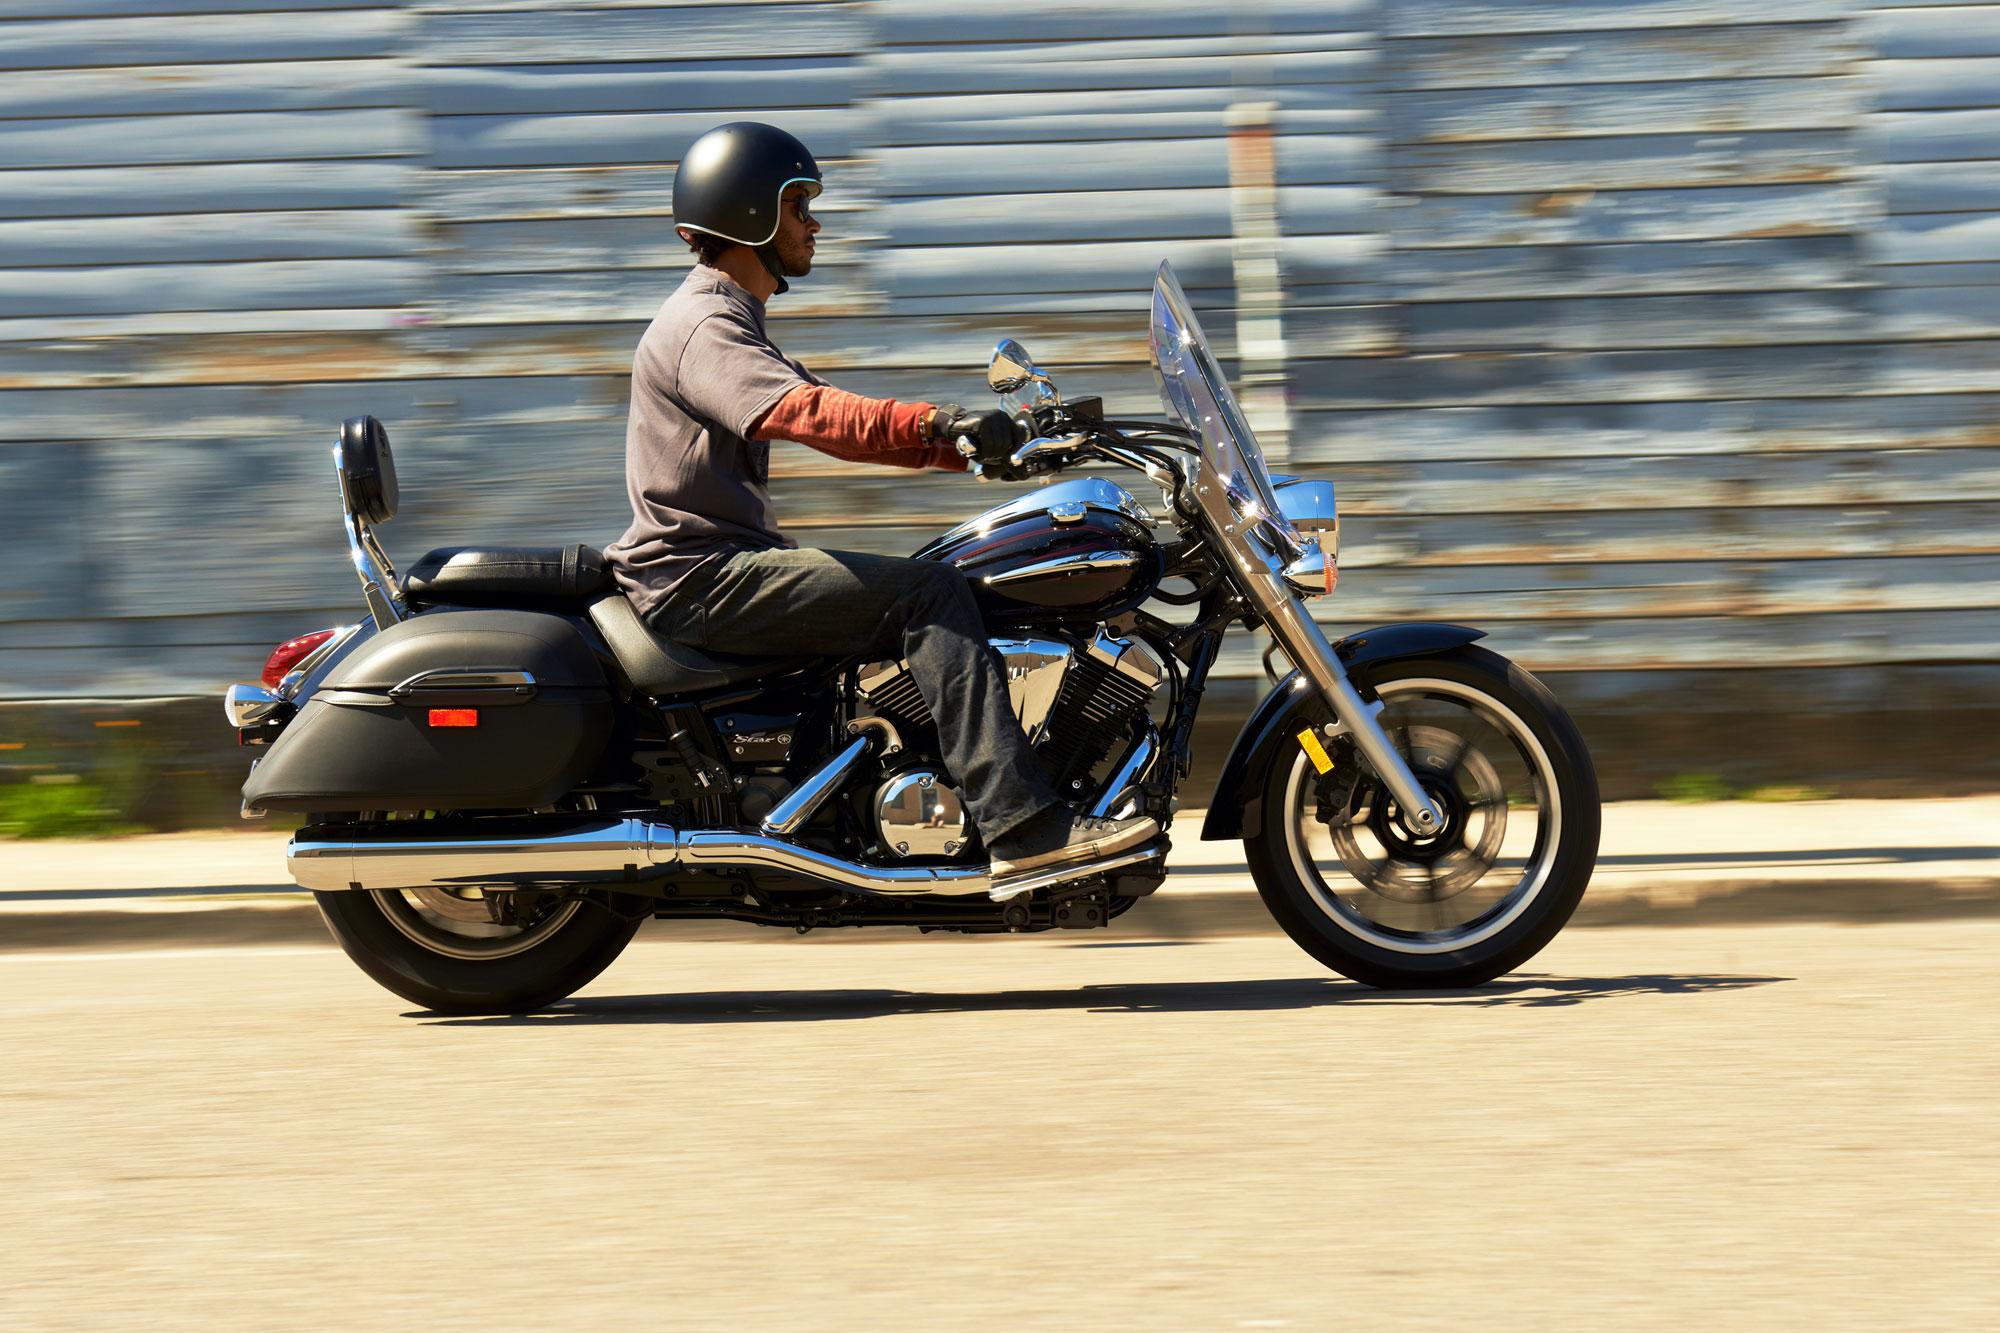 2013 Yamaha V-Star 950 Tourer Review